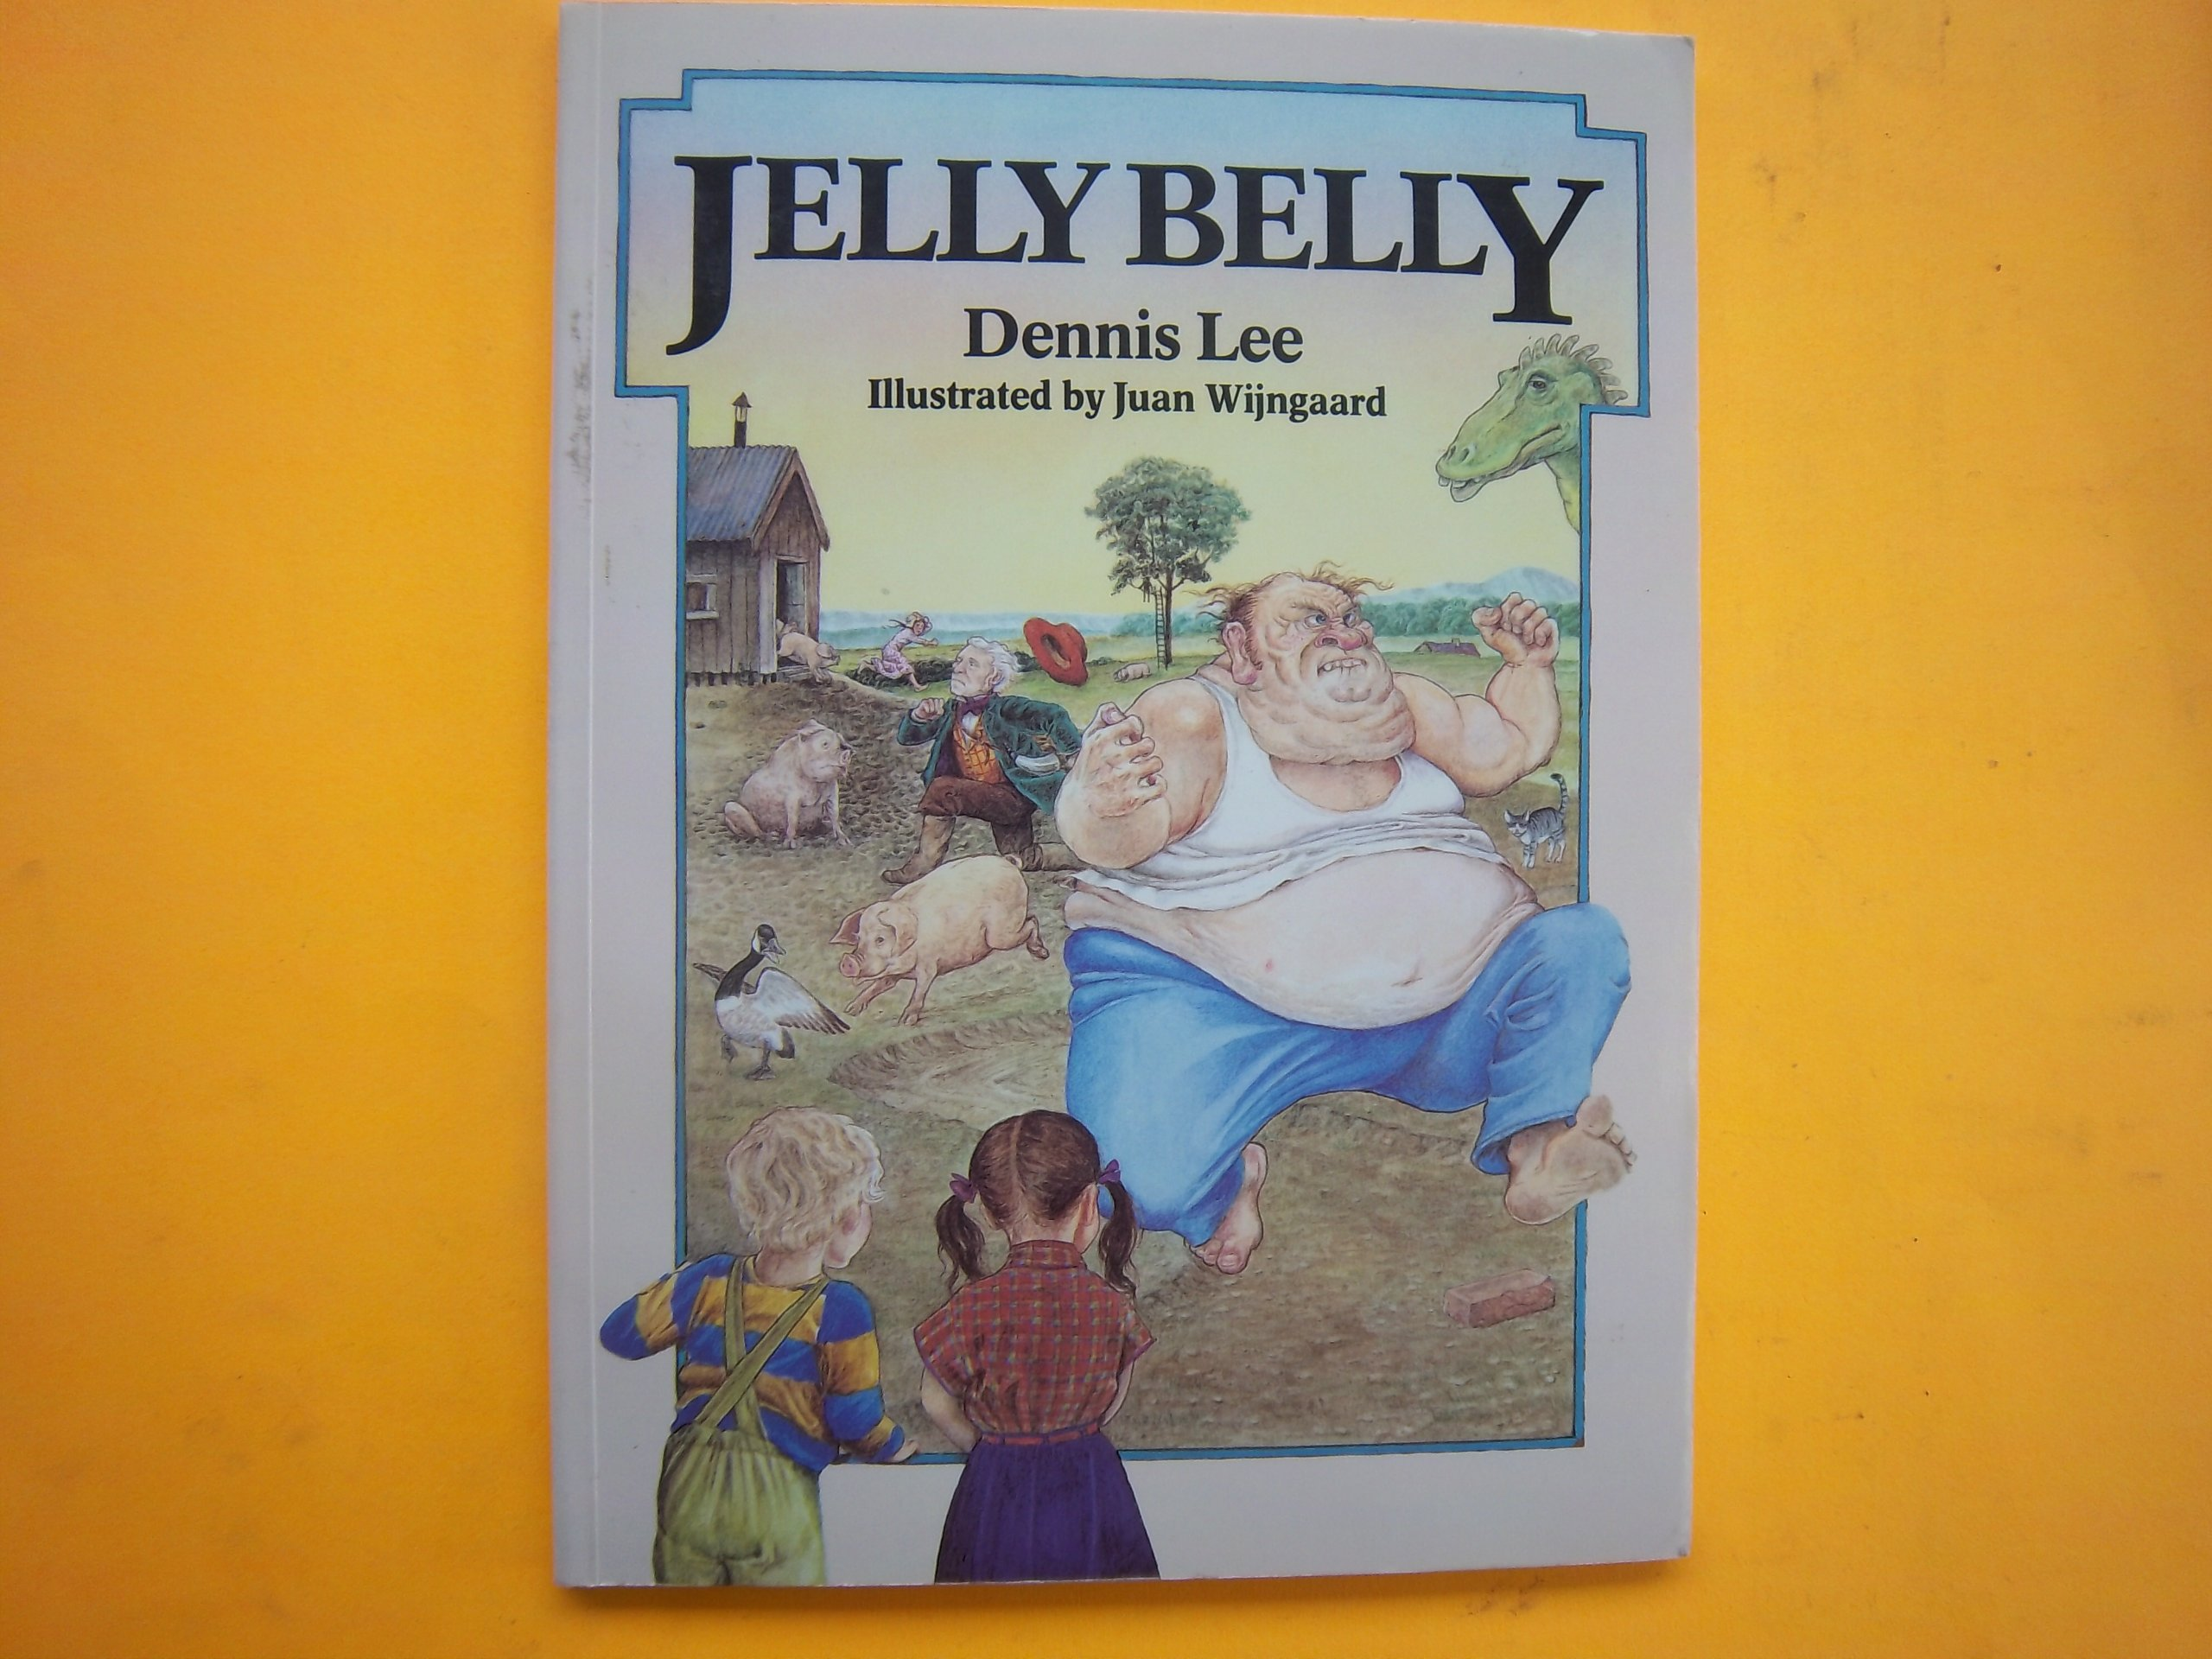 Jelly Belly Dennis Lee 9780771594205 Books Gng